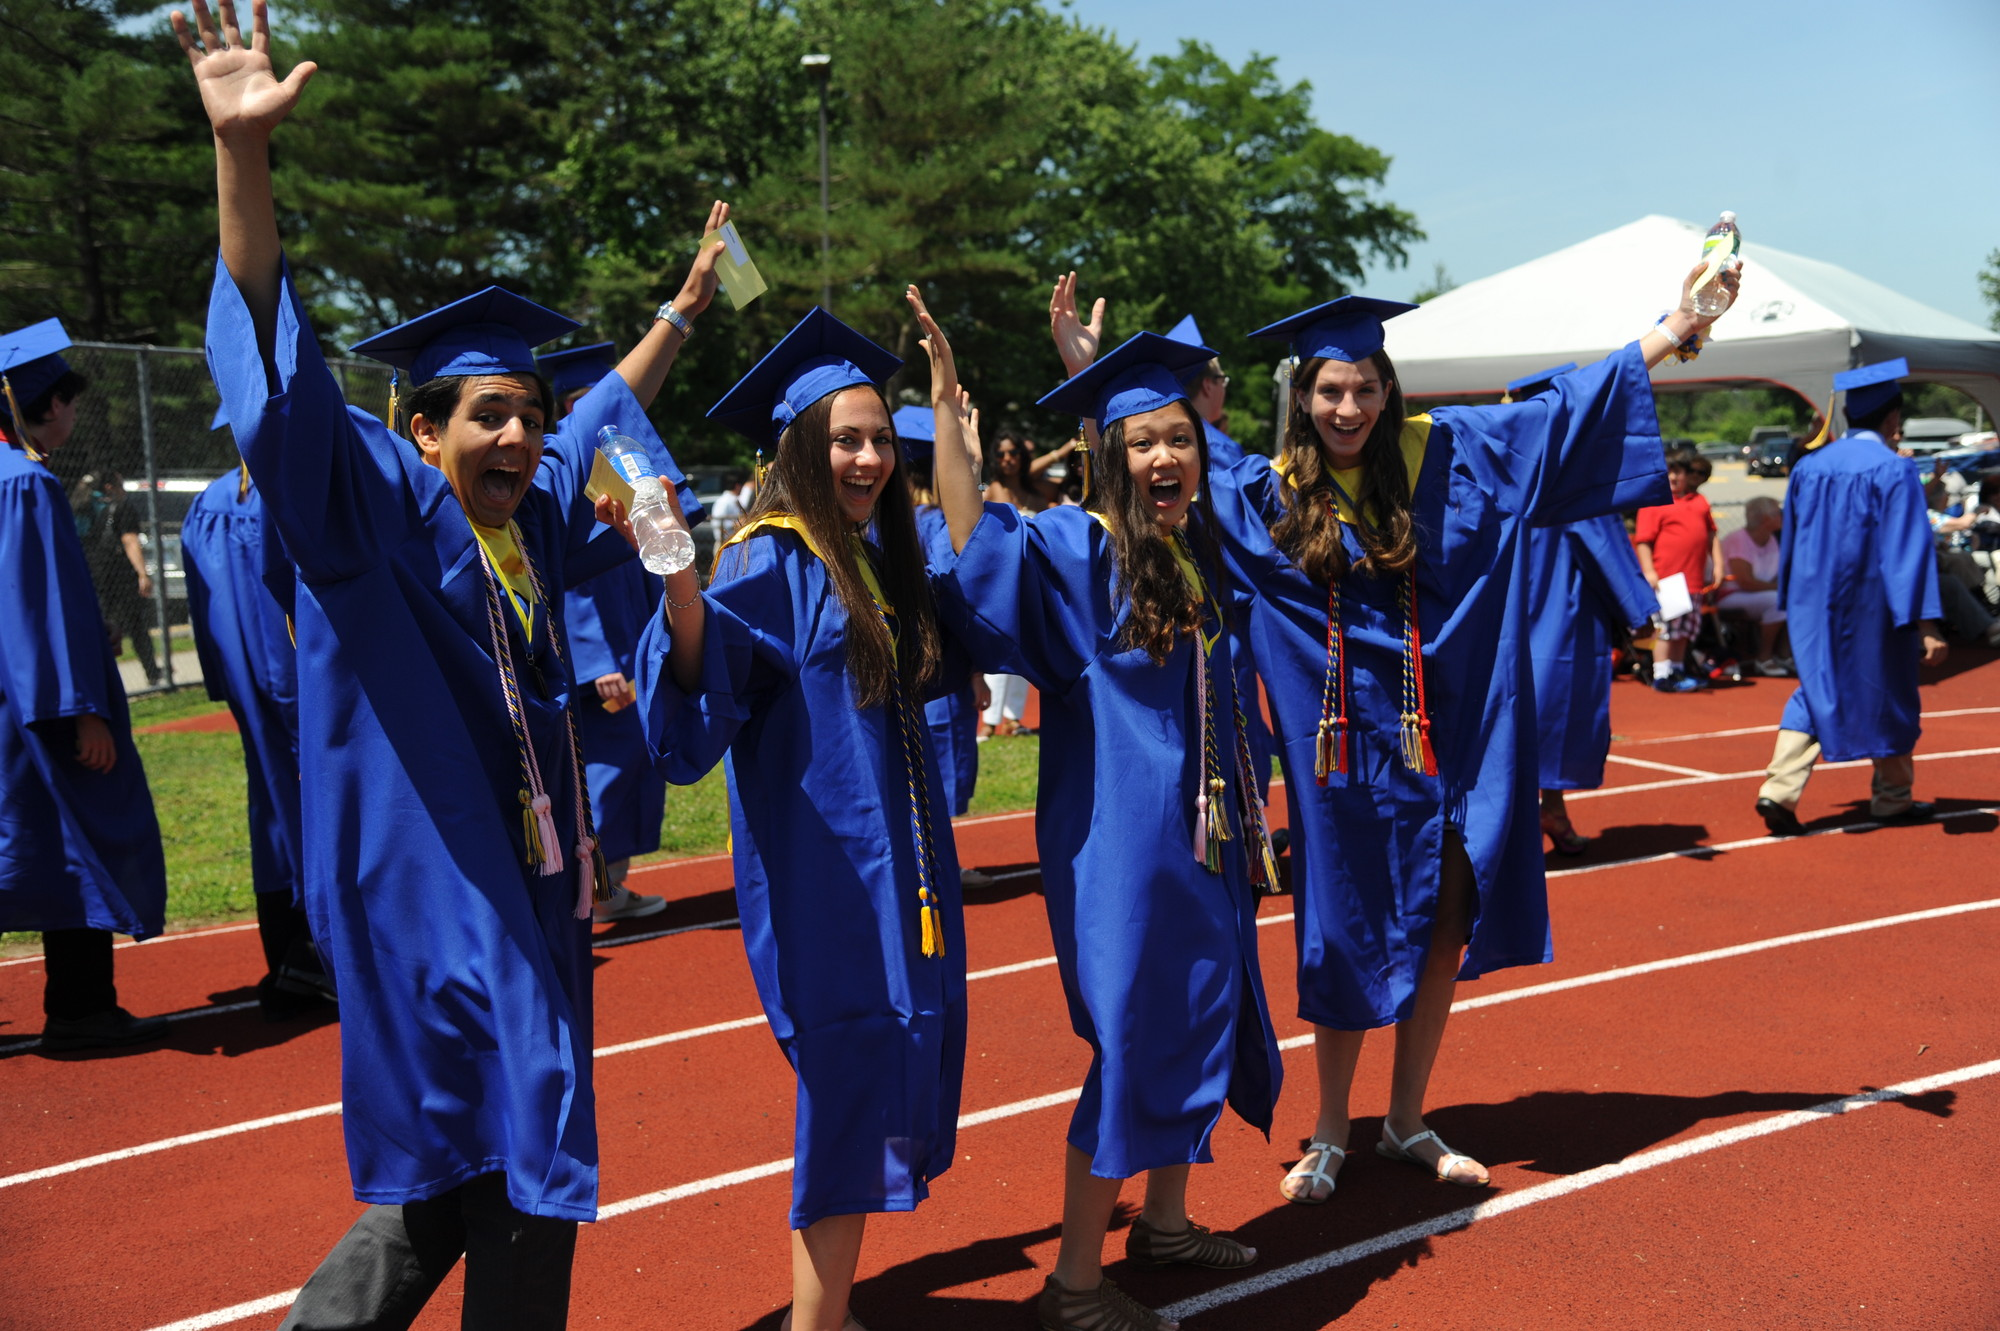 As students entered the football field to begin the graduation ceremony on Sunday, these four excited seniors expressed their excitement to be among the East Meadow High School graduating class of 2013.